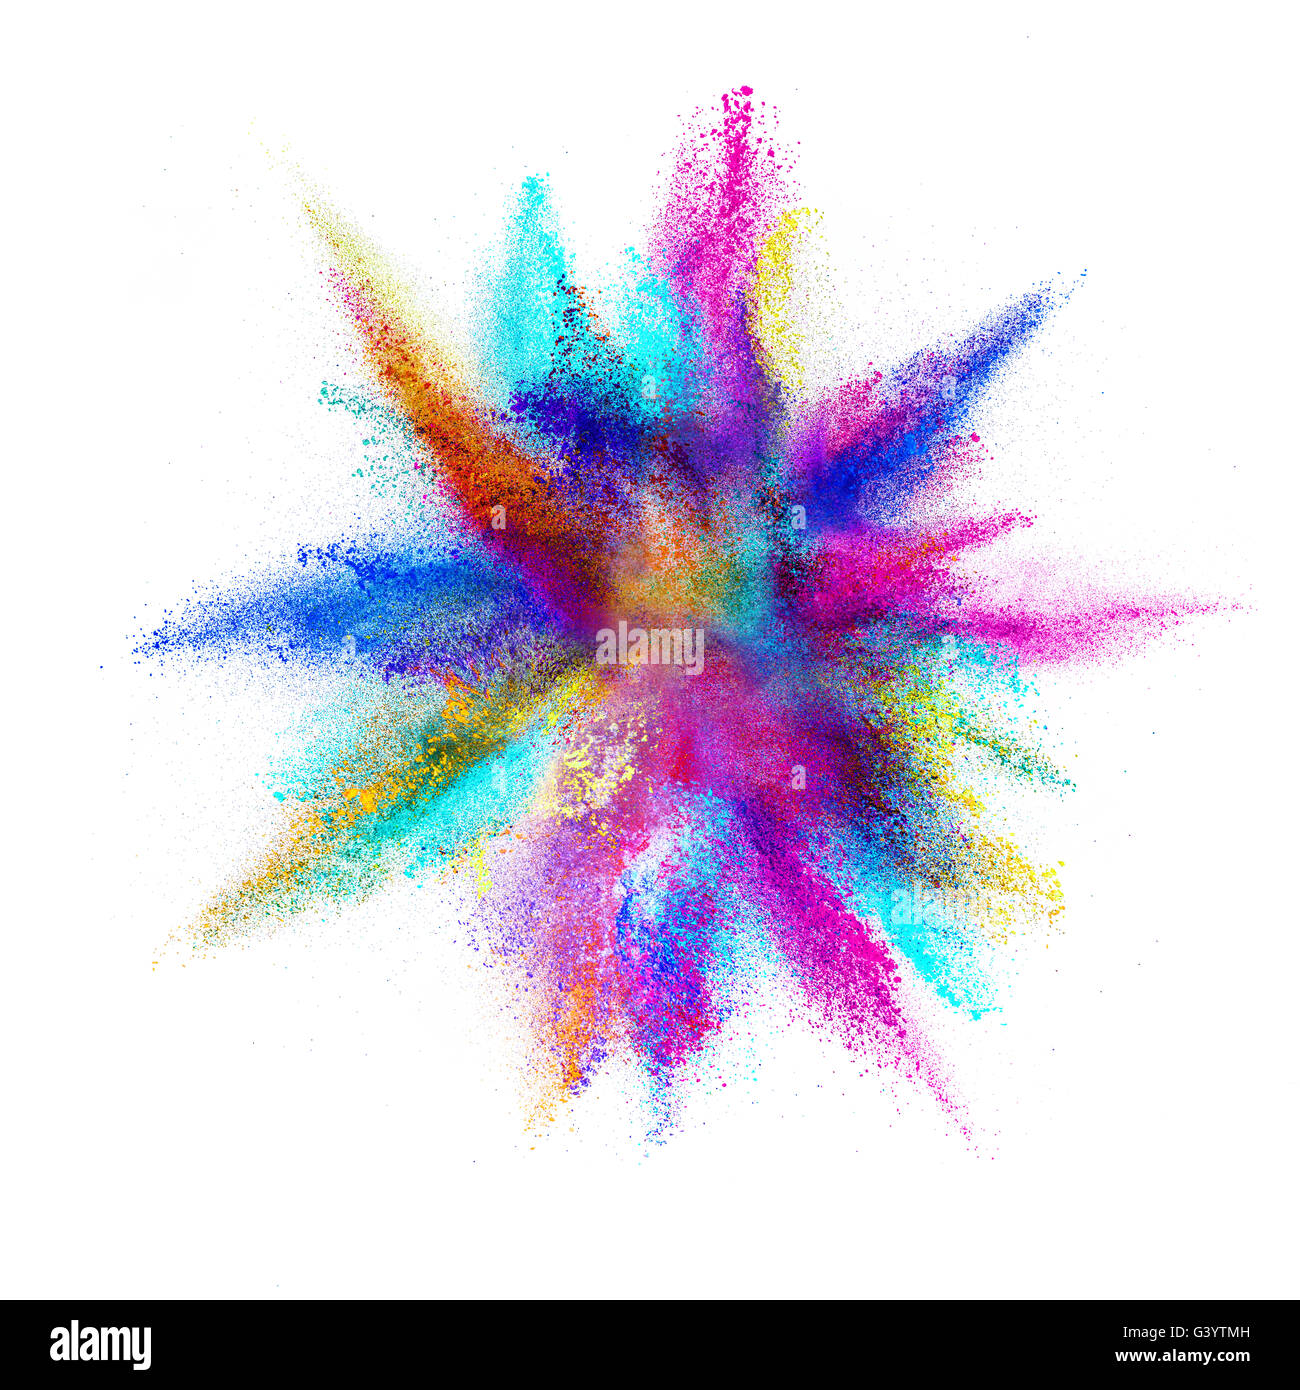 Explosion of colored powder, isolated on white background - Stock Image